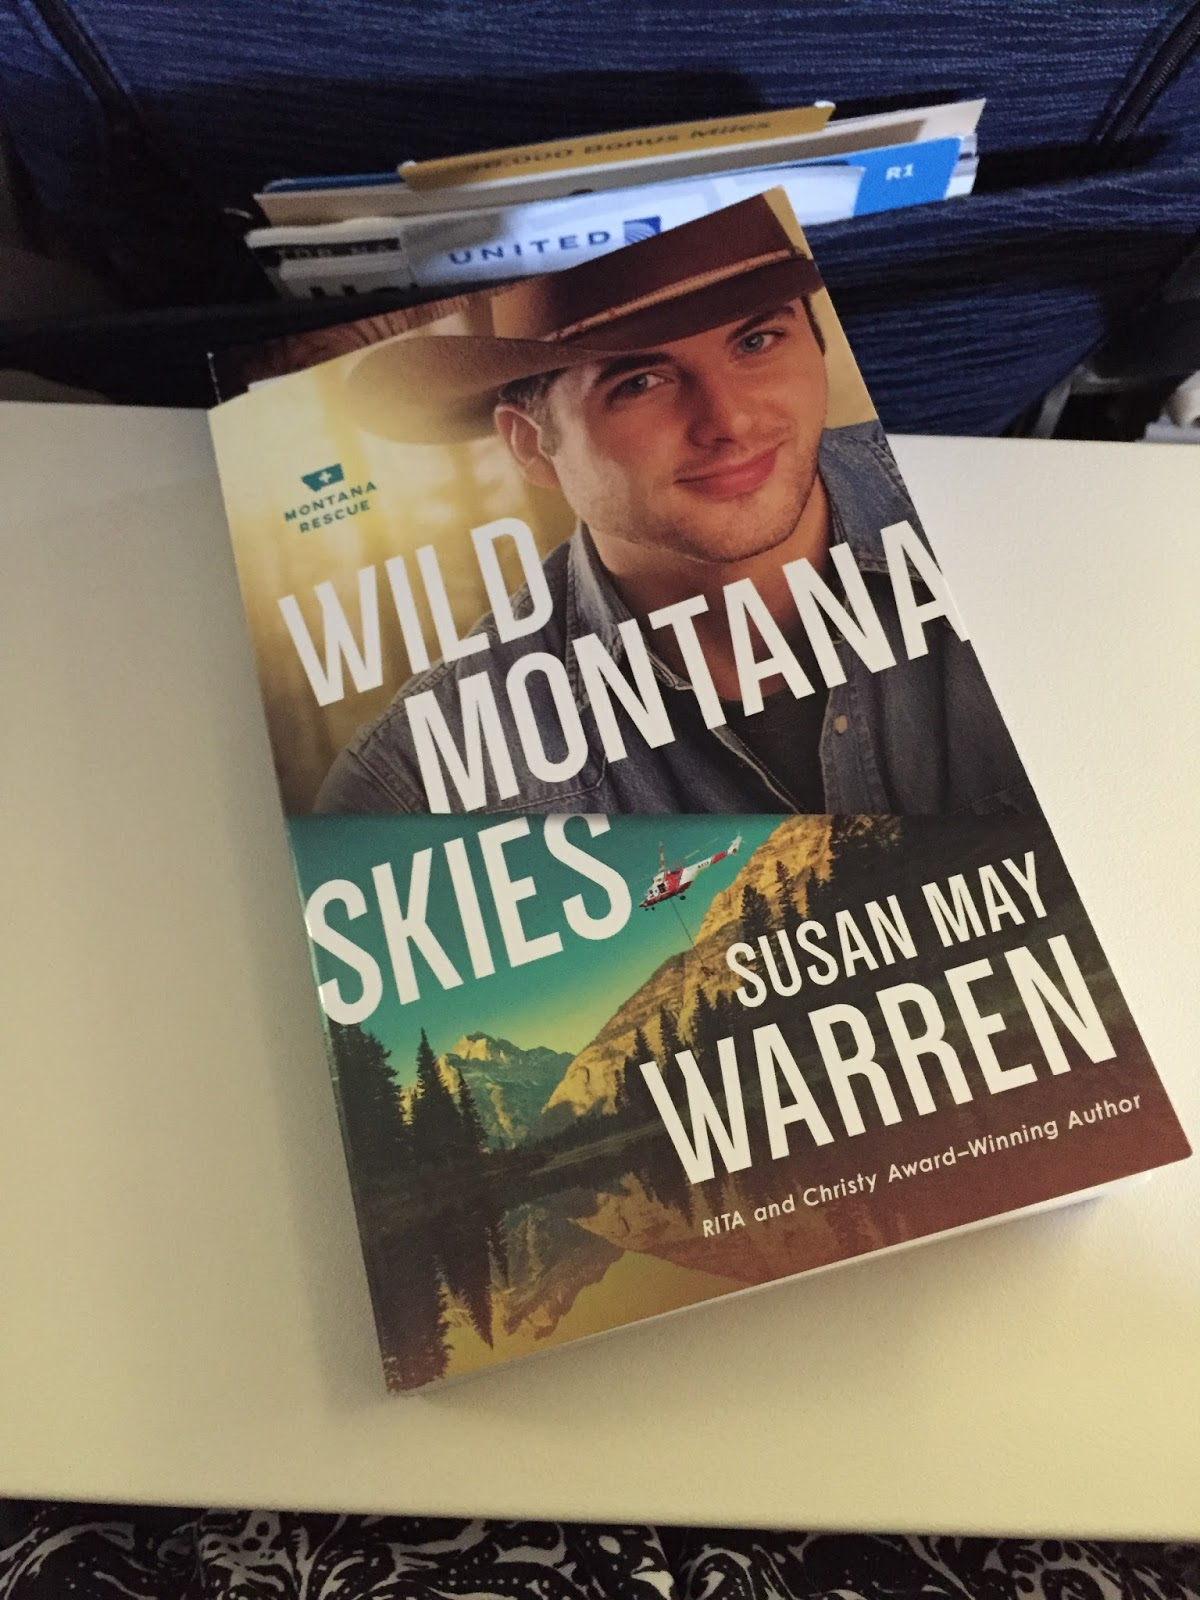 Wild Montana Skies sets the stage for this series with a fast paced tale of  an old romance being rekindled with some delightful complications.